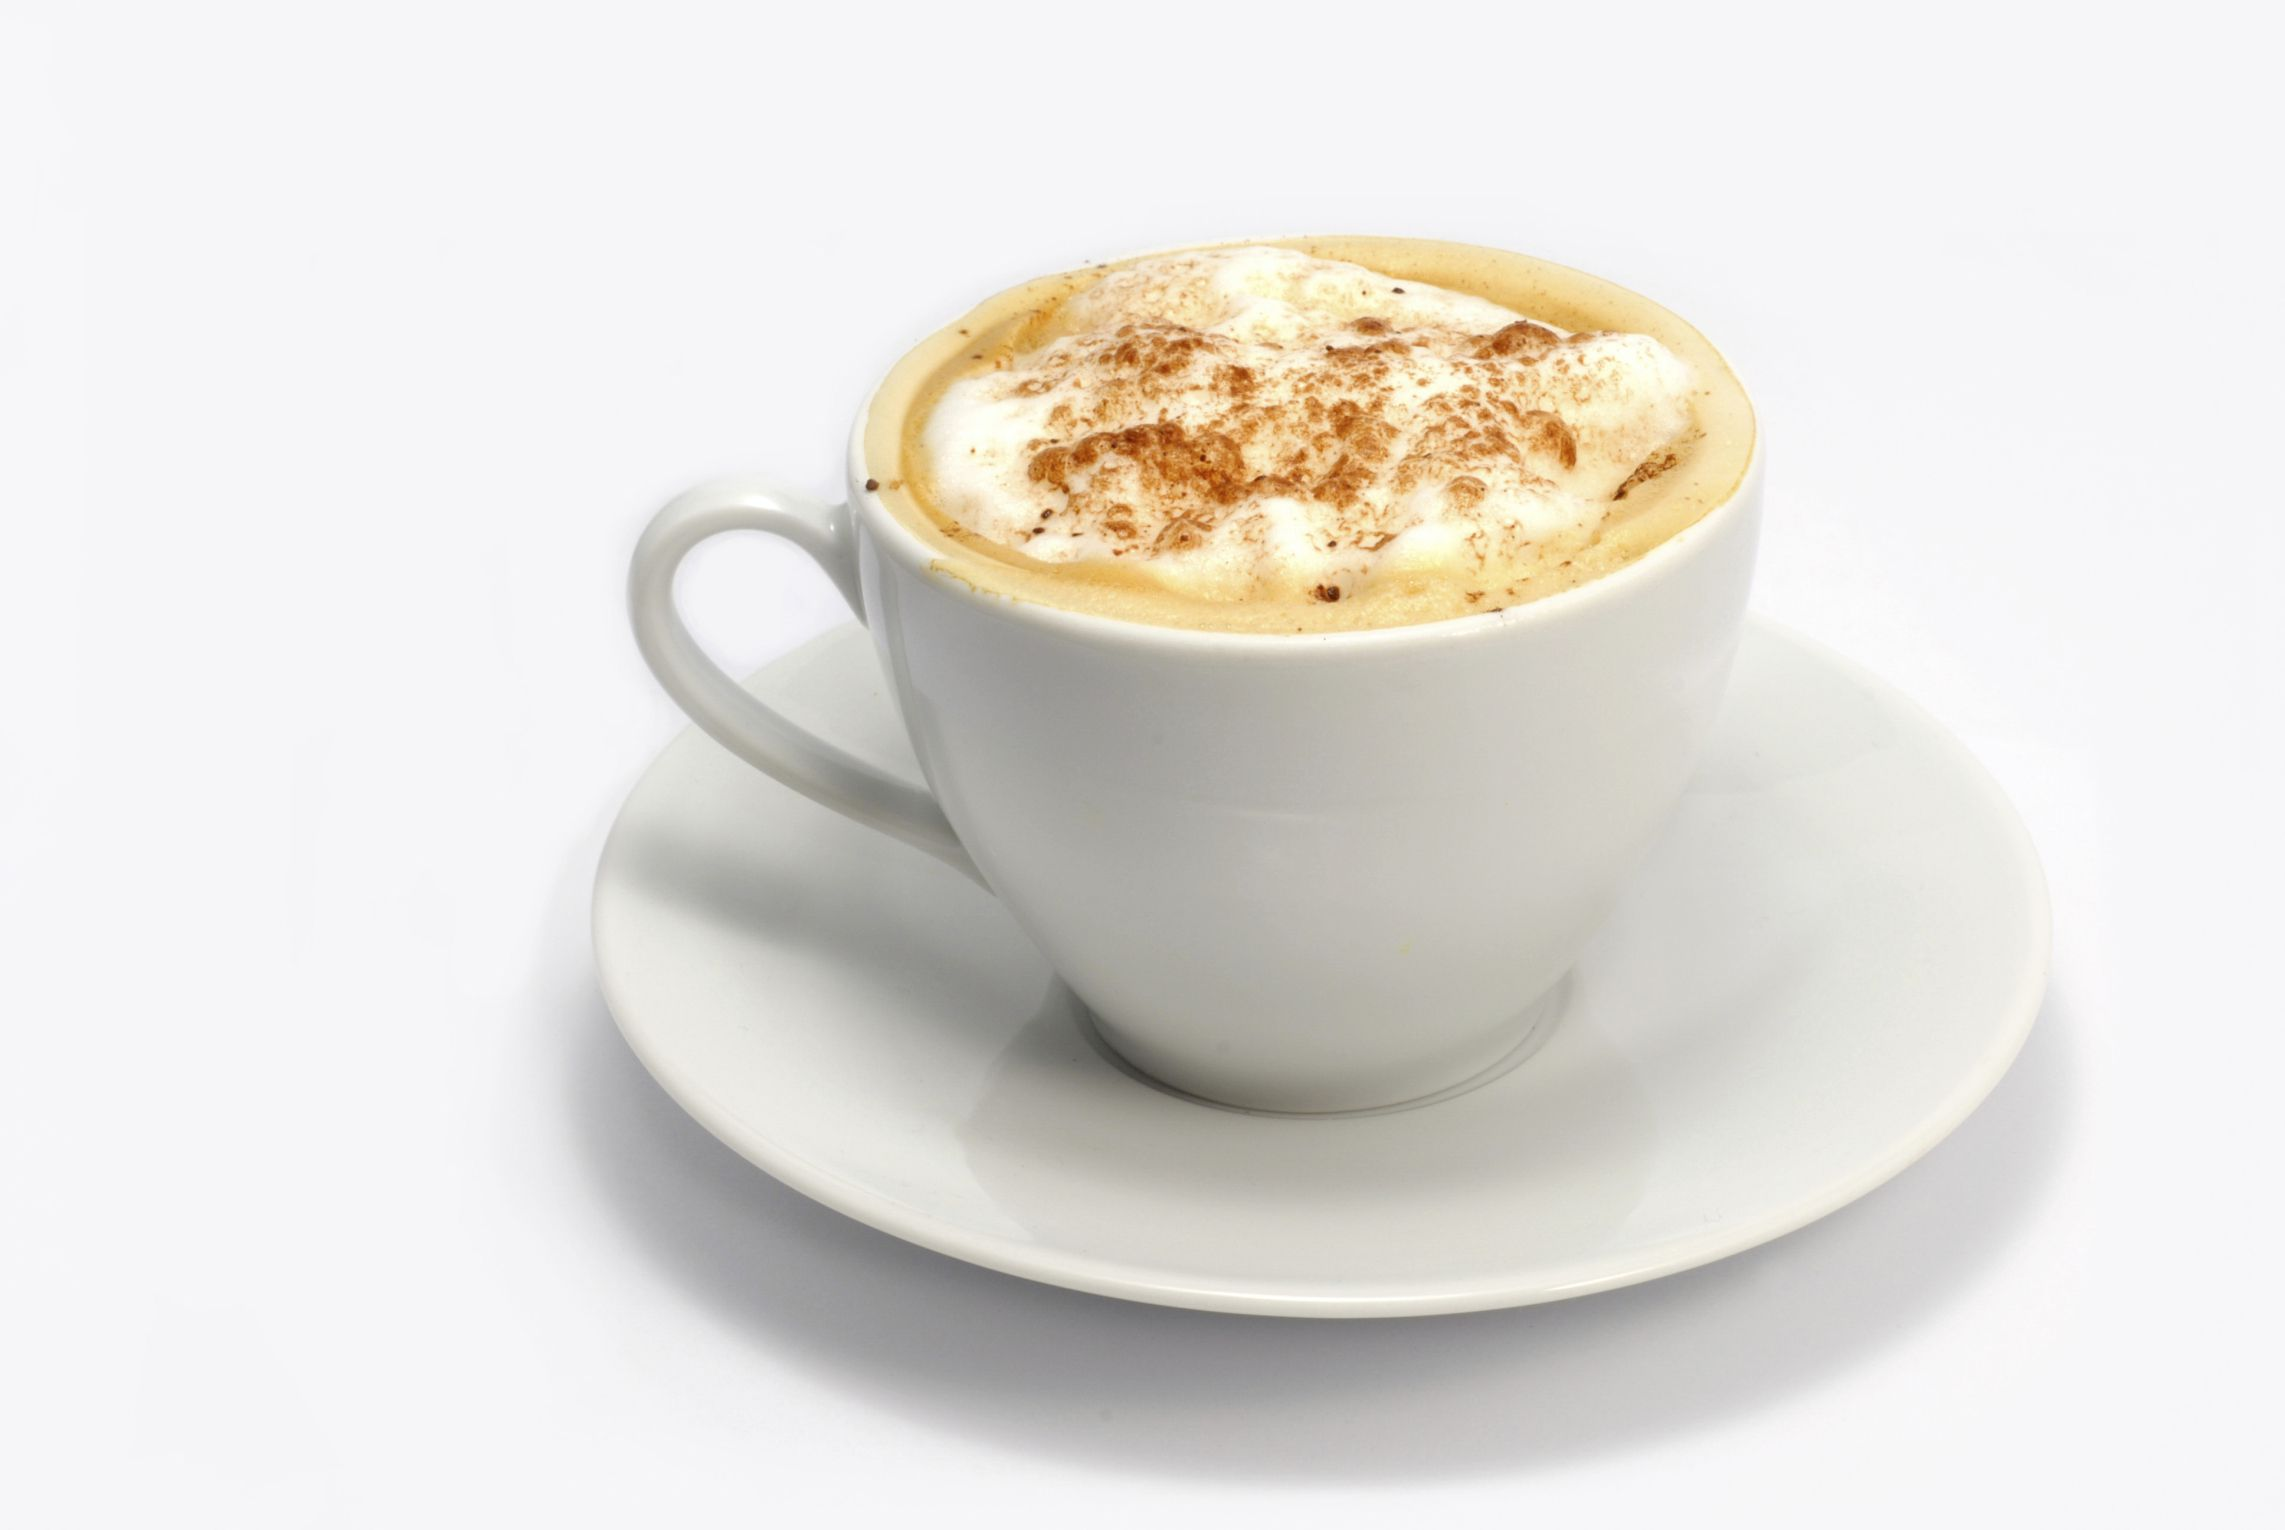 Cup of coffee/cappuccino